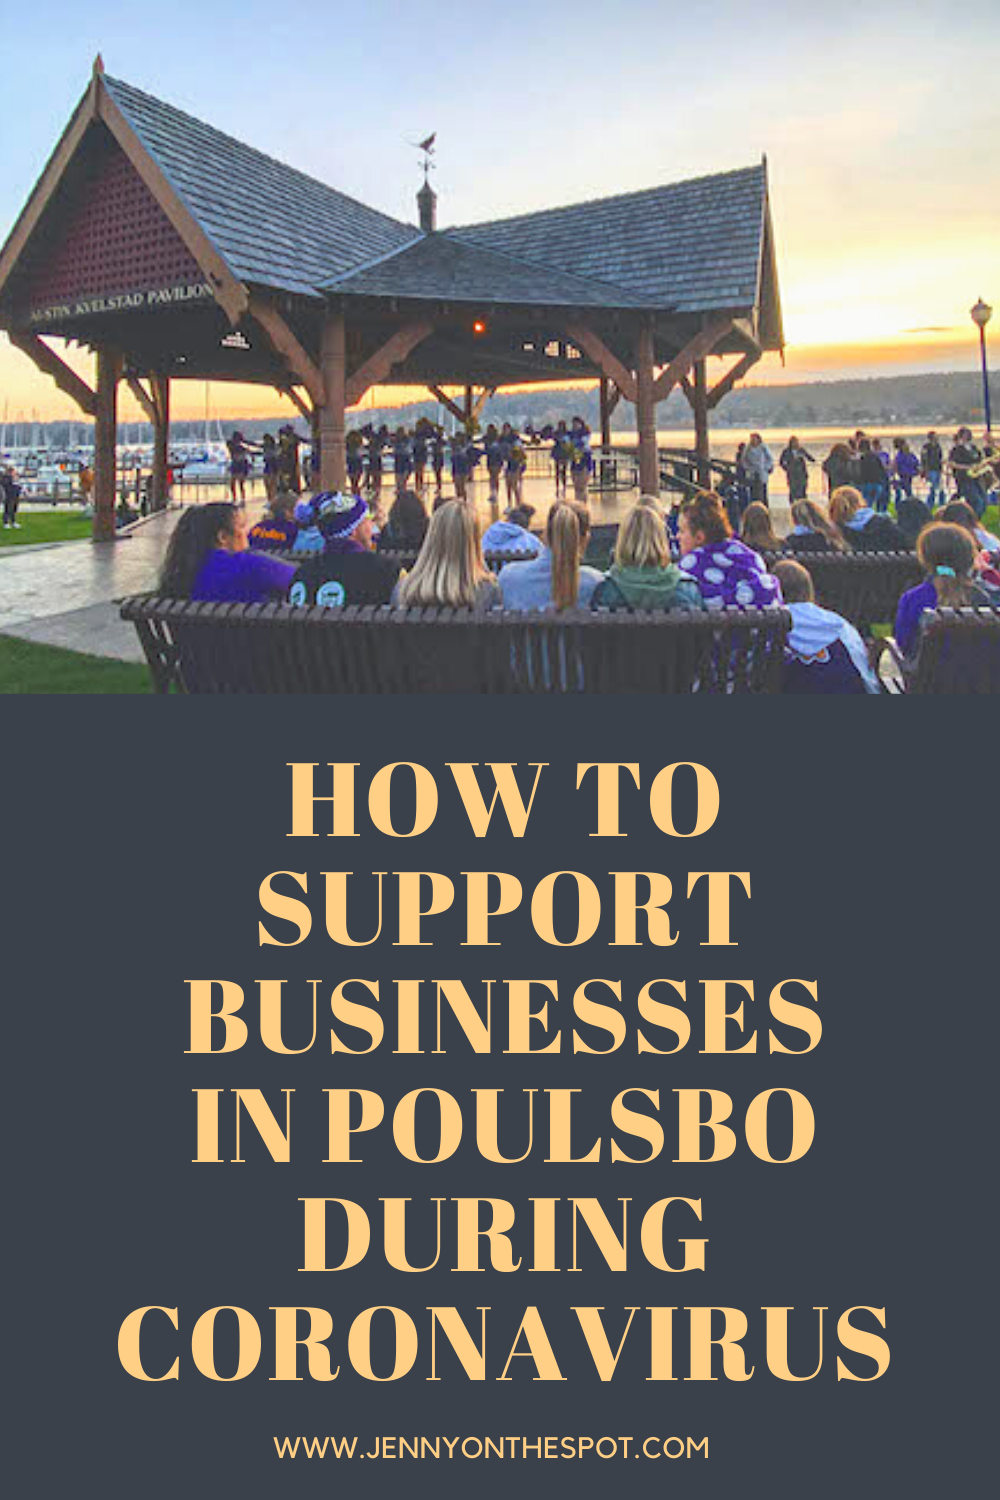 How To Support Poulsbo Businesses During Coronavirus